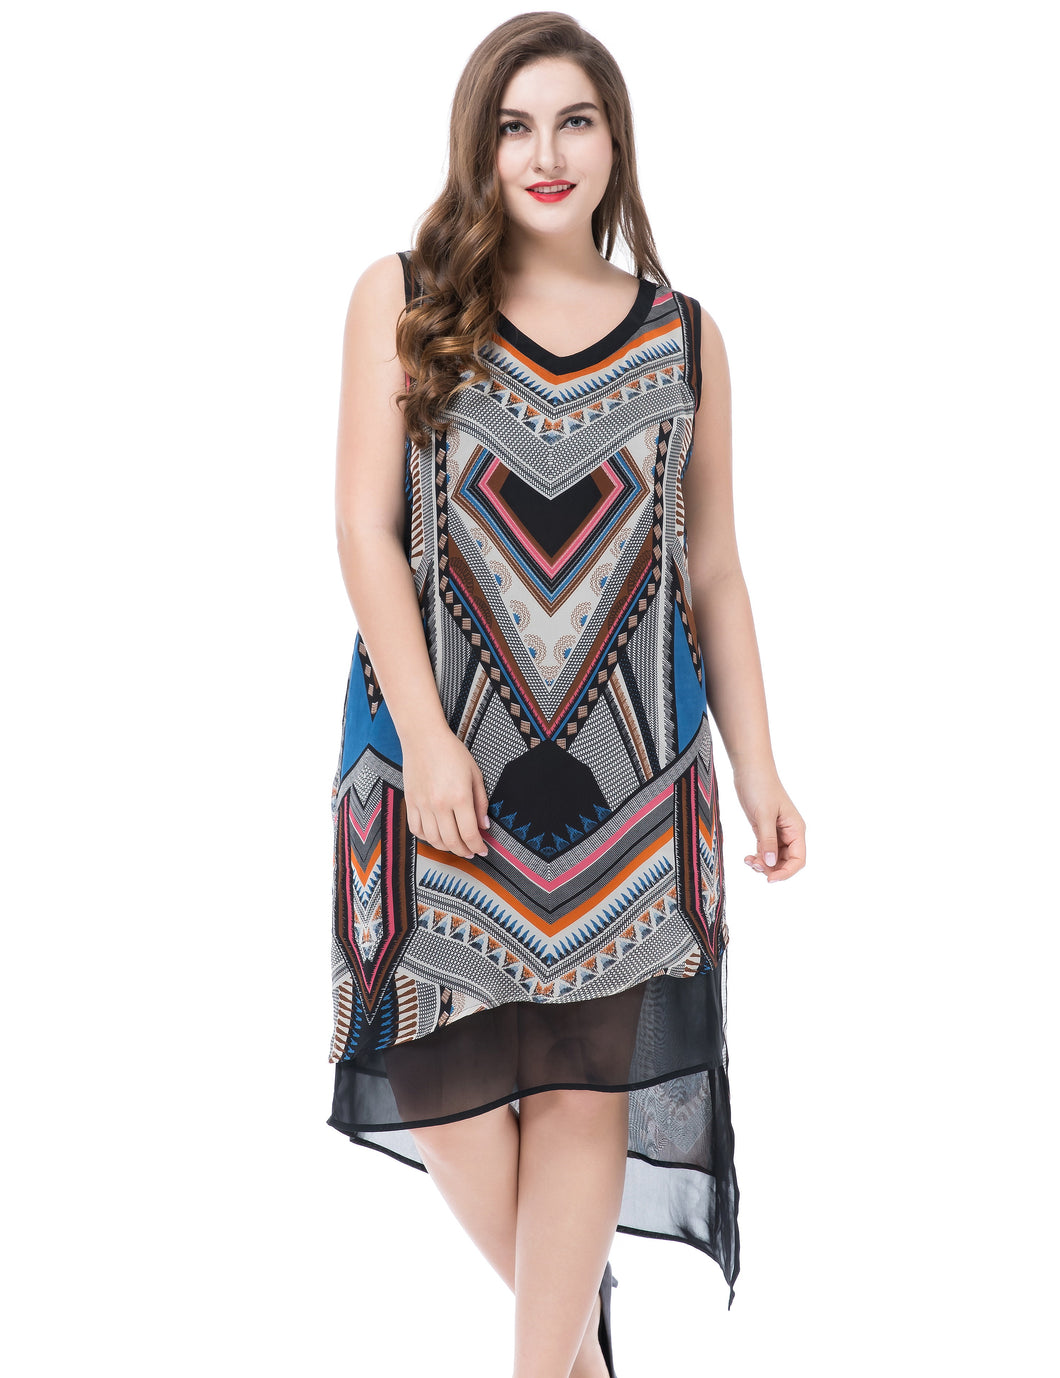 Chicwe Women's Plus Size Multi Layer Printed Dress Sleeveless US16-26 - kats closet1